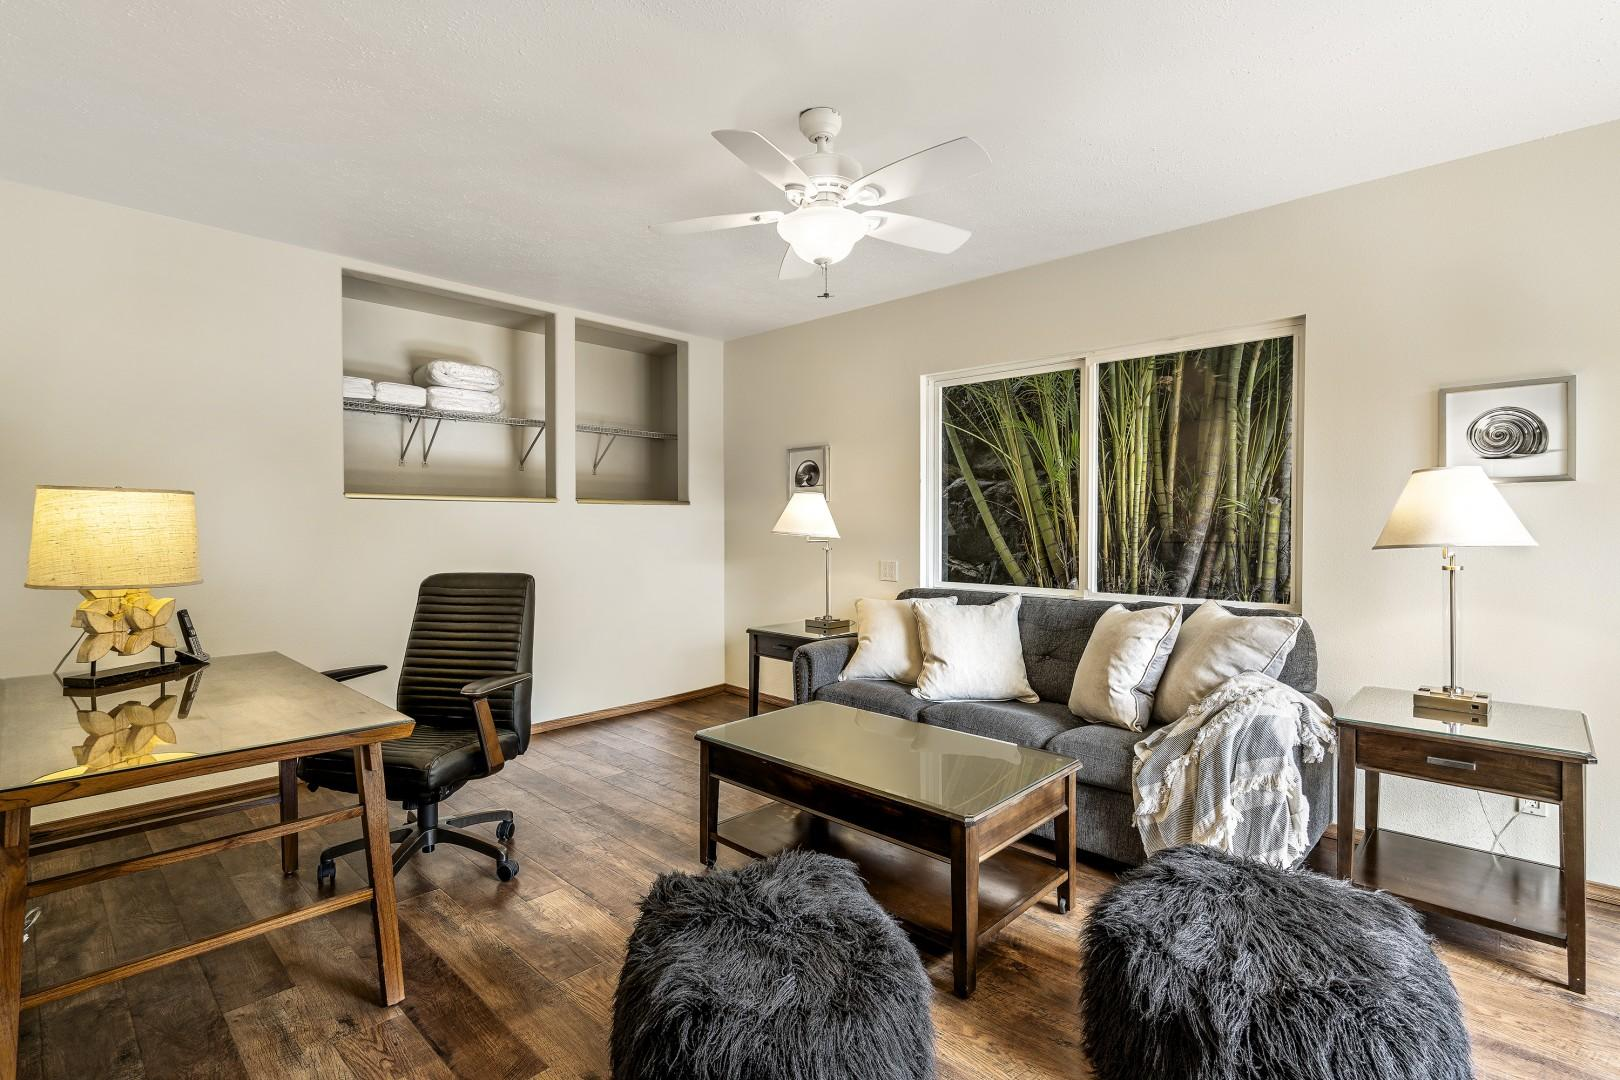 Office features an attached half bathroom and Queen sleeper sofa with A/C